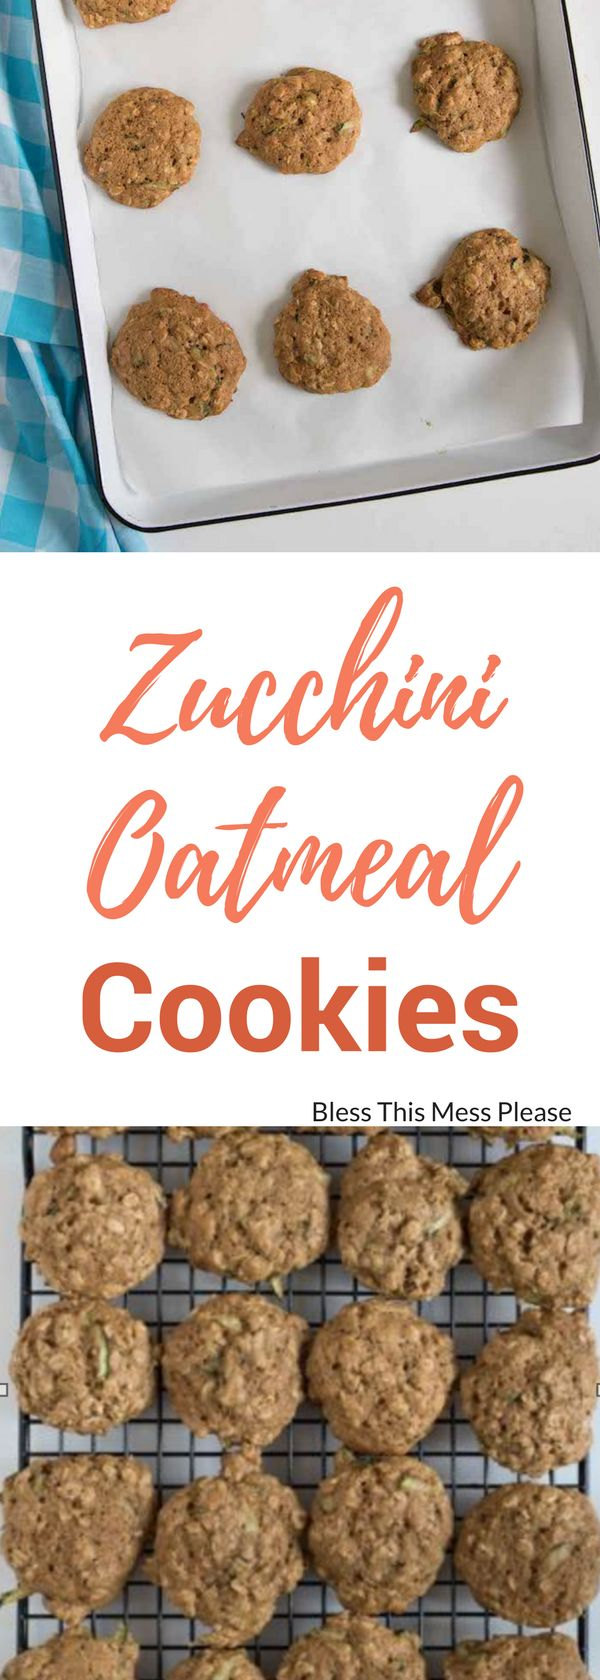 Zucchini Oatmeal Cookies -  surprisingly light and fluffy cookies made from oats and shredded zucchini.